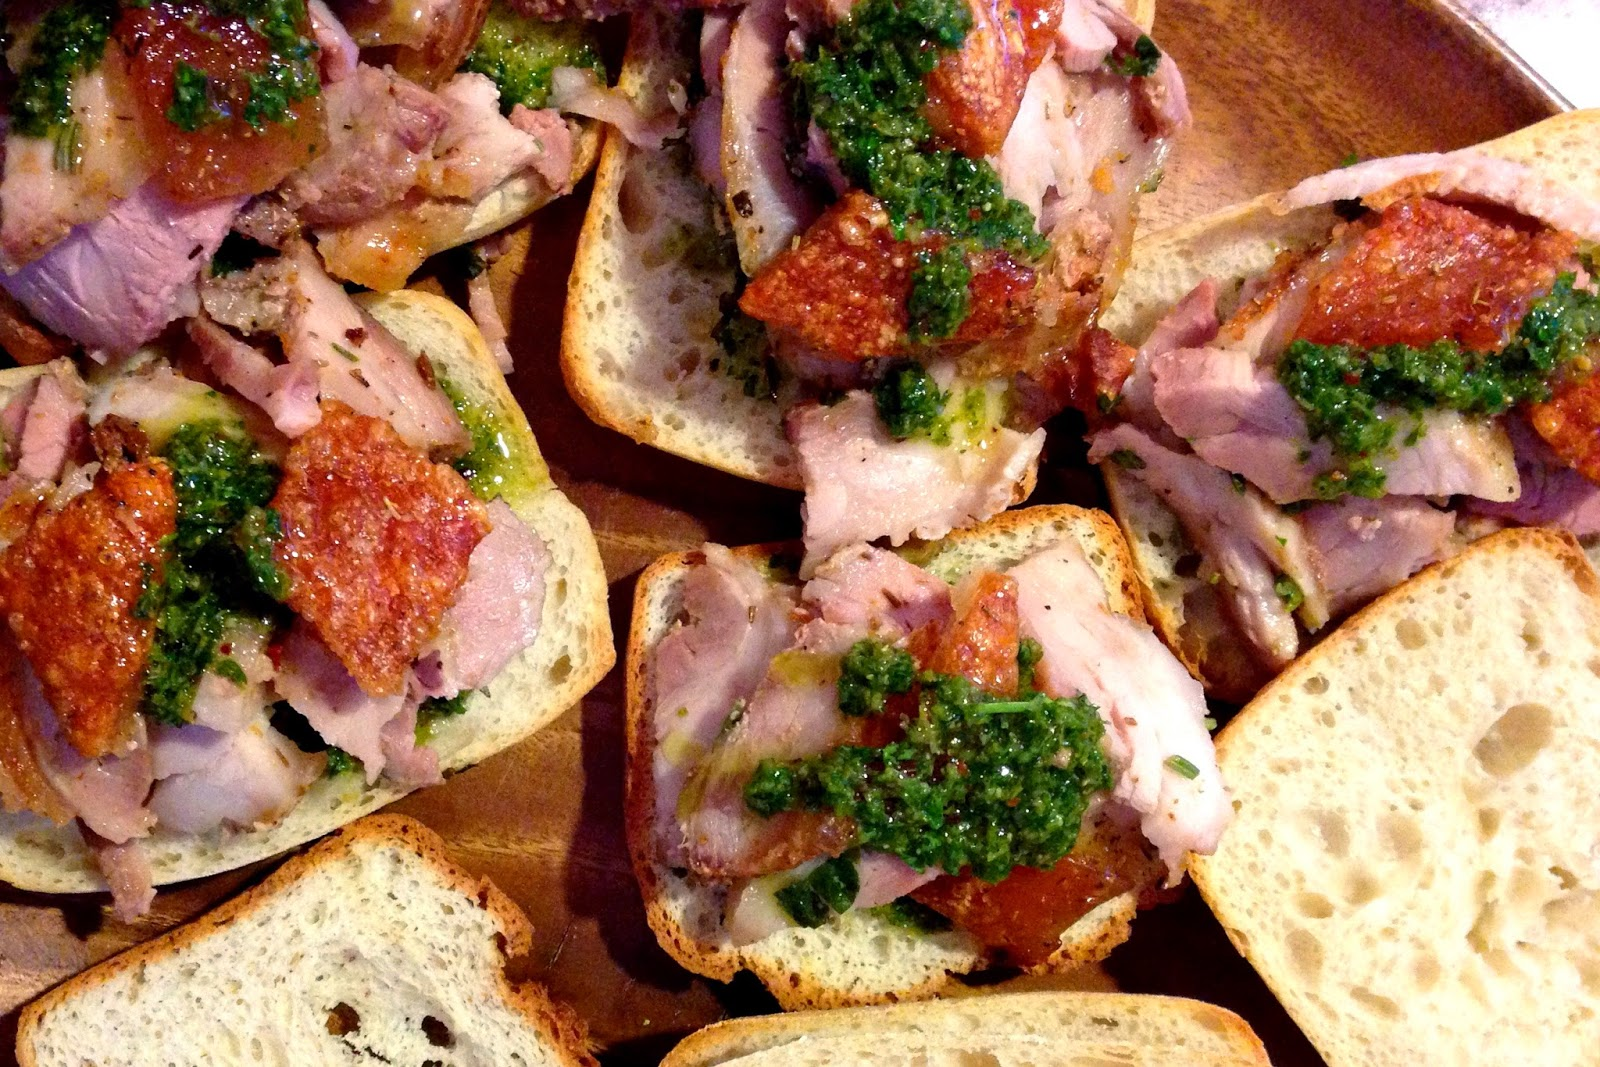 Umani Cucina Food Truck Utah Homemade Porchetta Sandwiches With Salsa Verde Crack Ling For